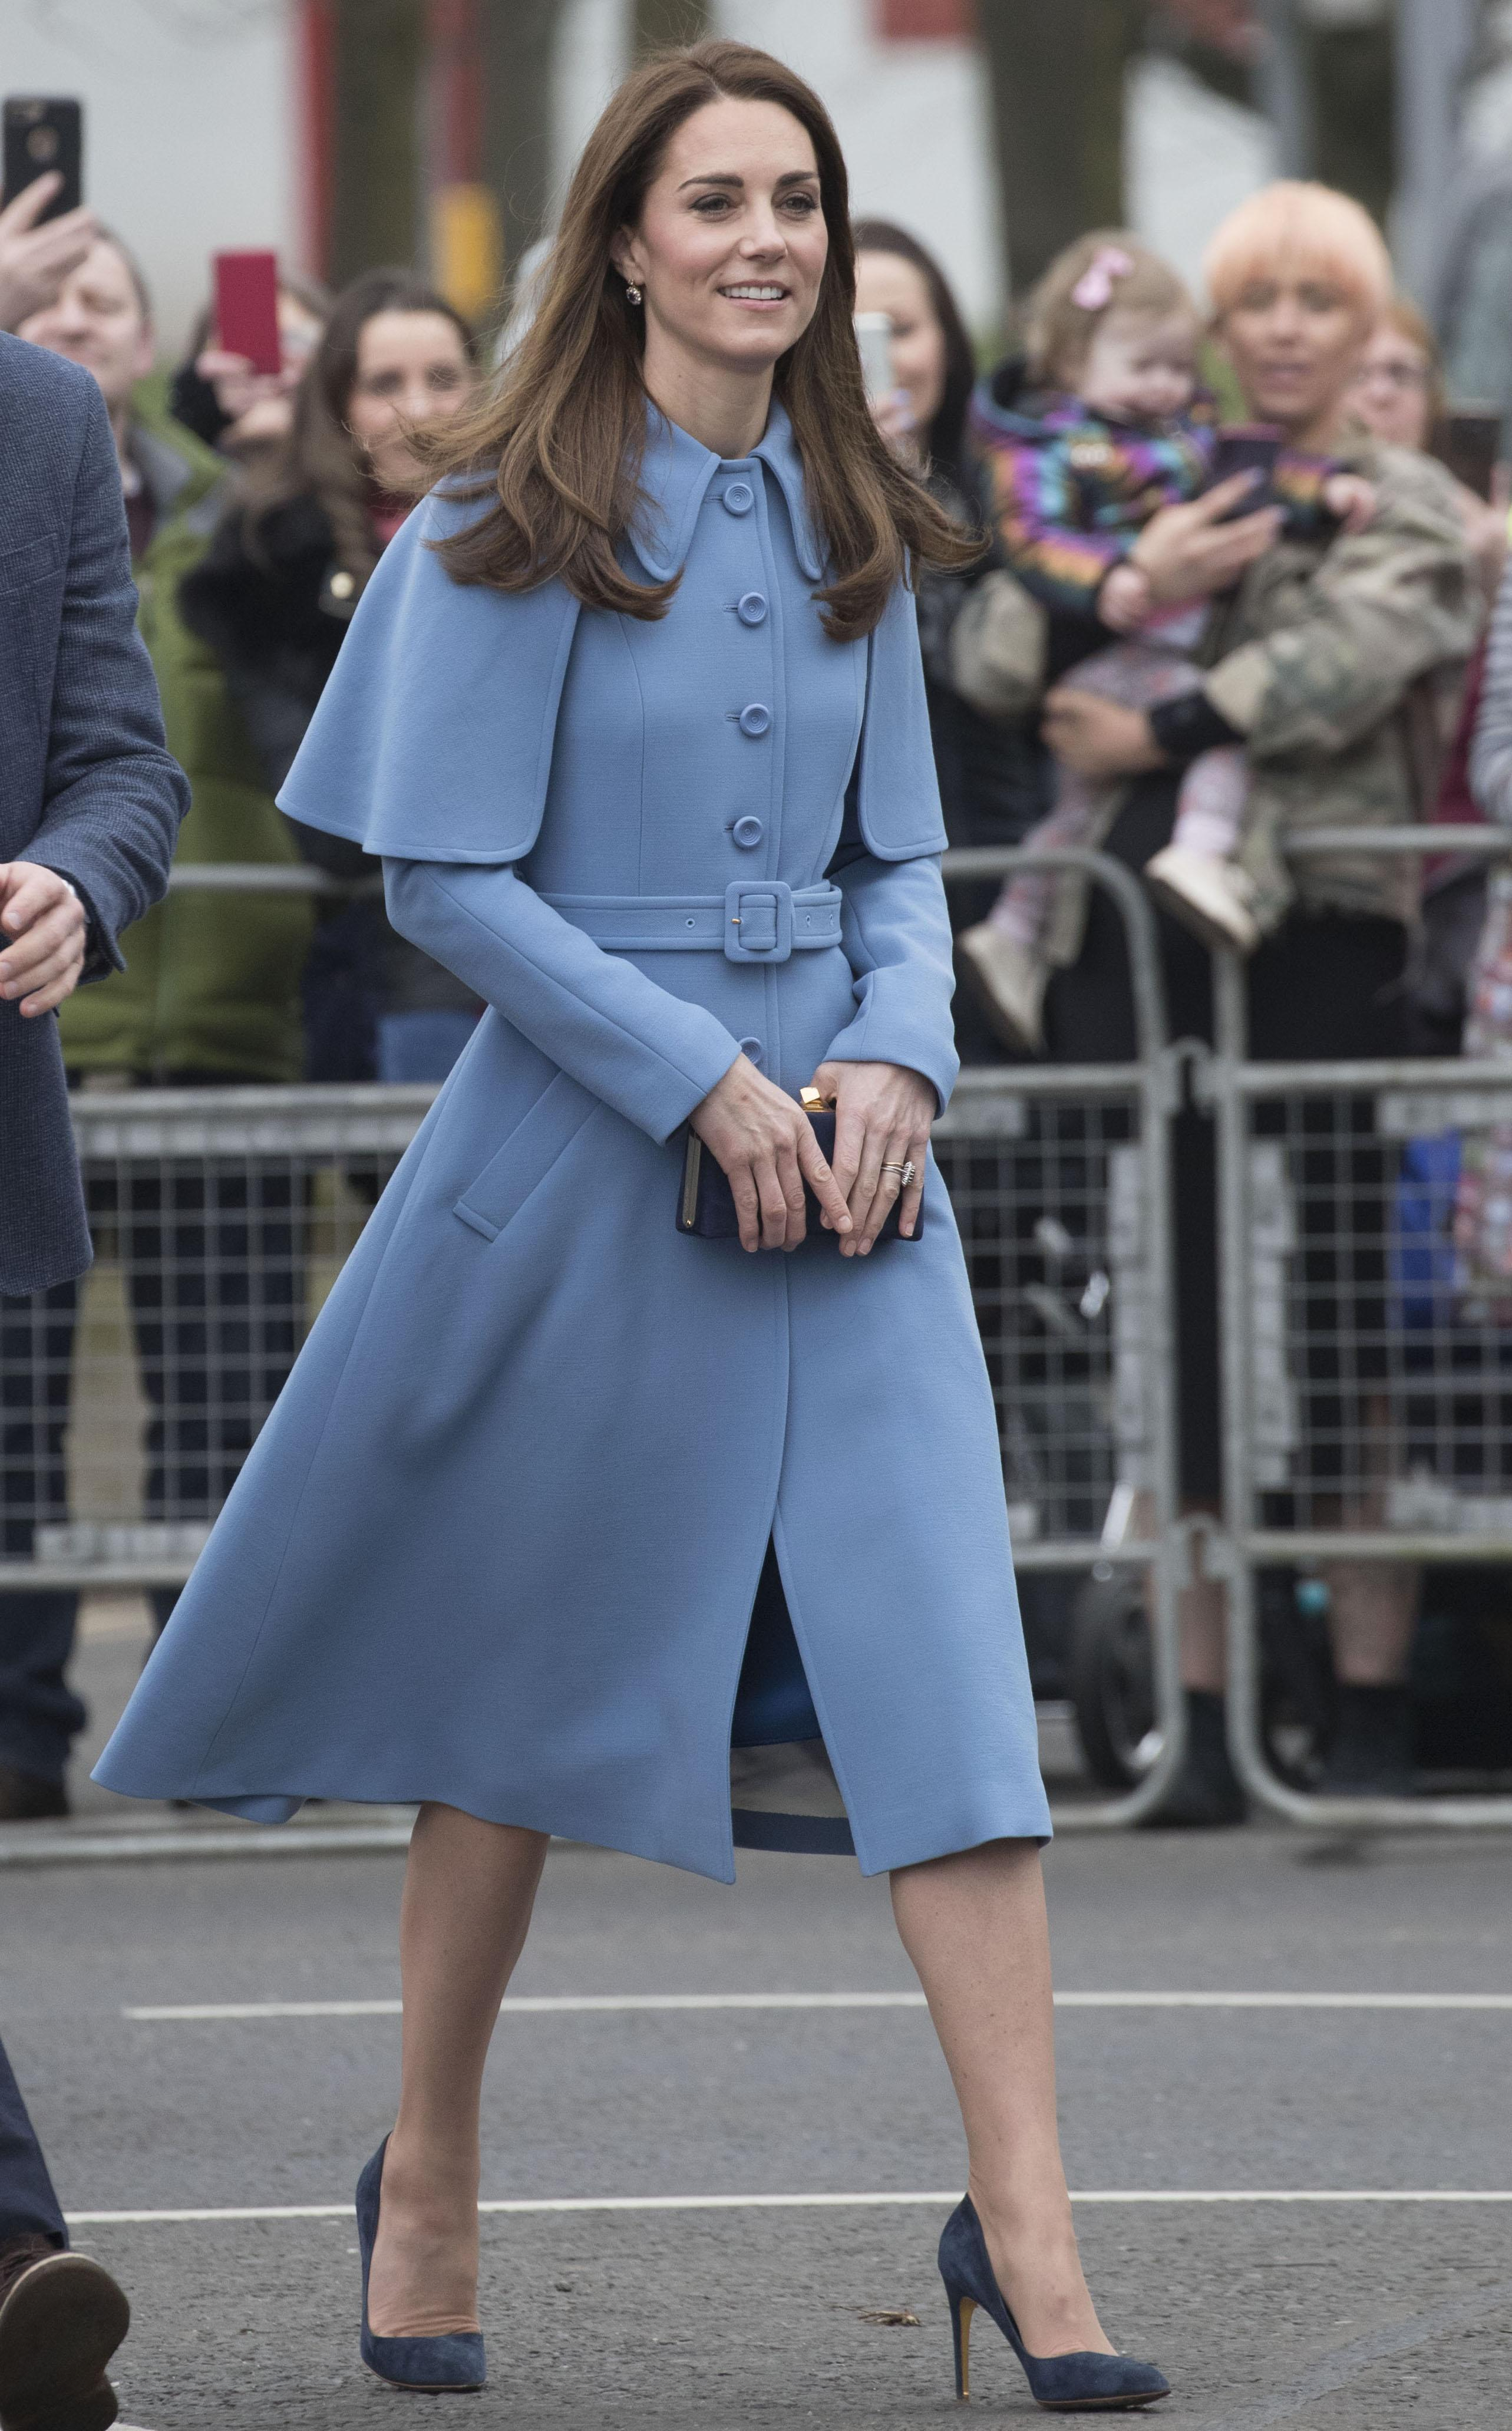 kate middleton style how to copy duchess chic blue cape coat photos kate middleton style how to copy